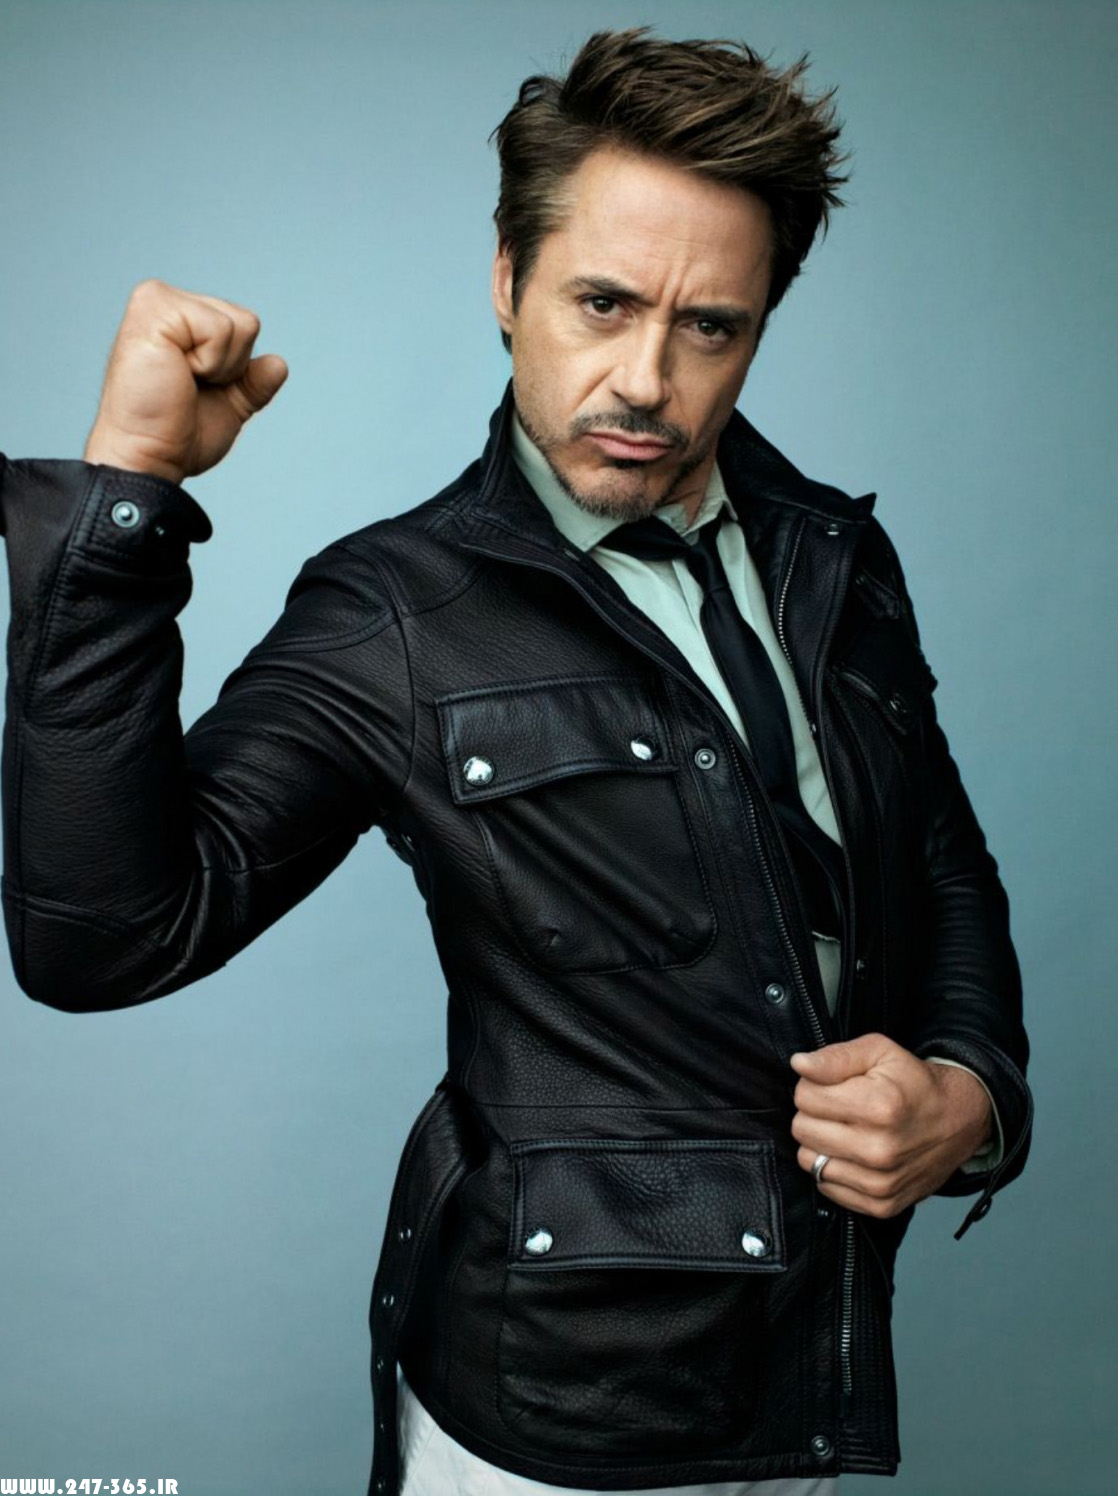 http://dl.247-365.ir/pic/celebrity/robert_downey_jr_2/Robert_Downey_Jr_2_02.jpg